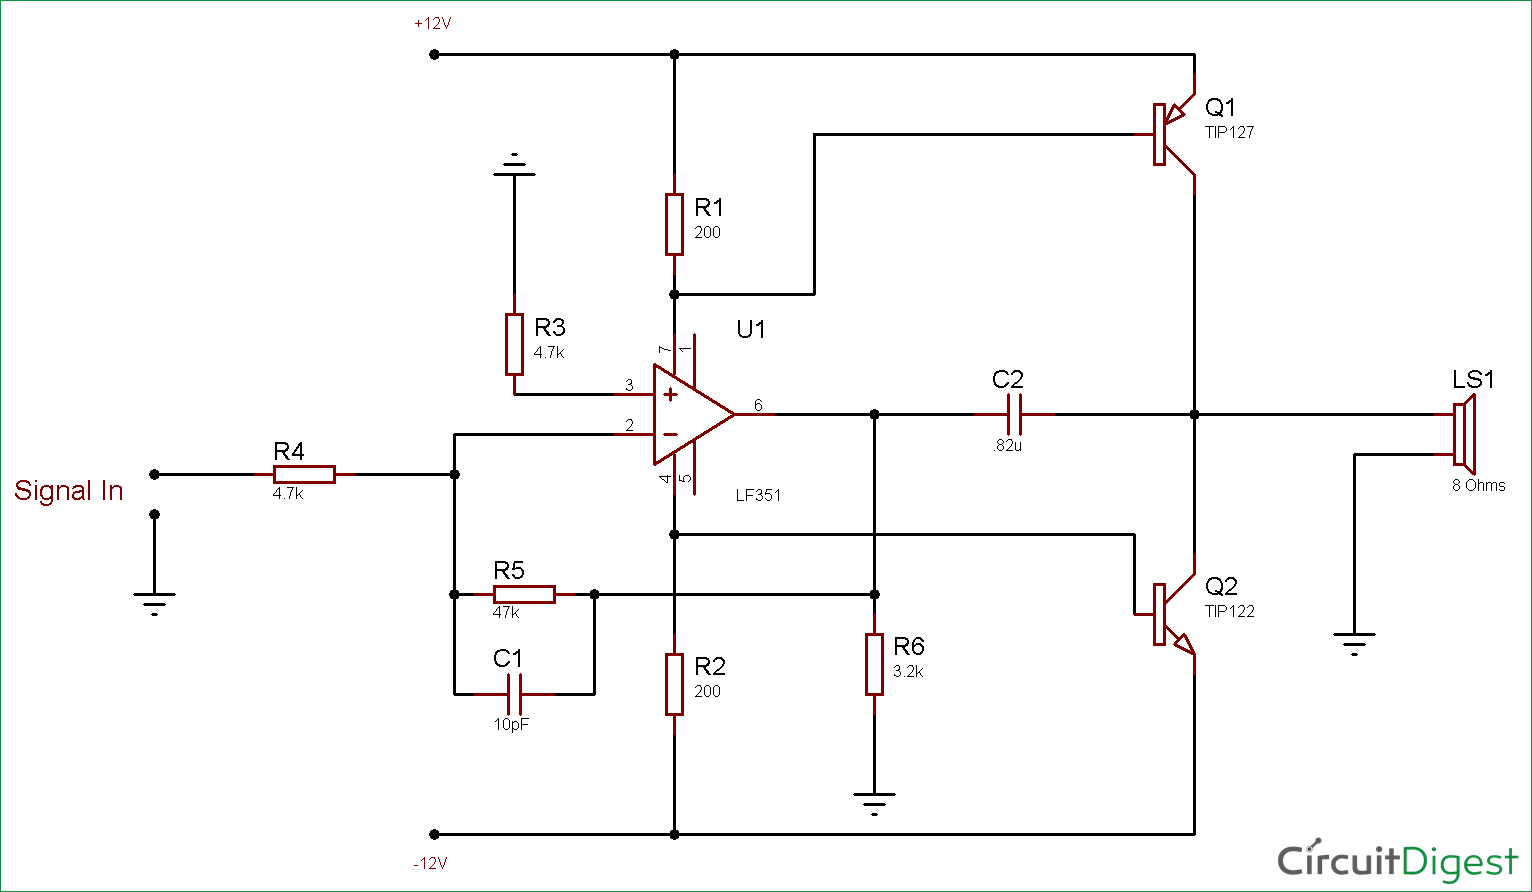 hight resolution of circuit diagram for 10 watt audio amplifier using op amp and power transistors